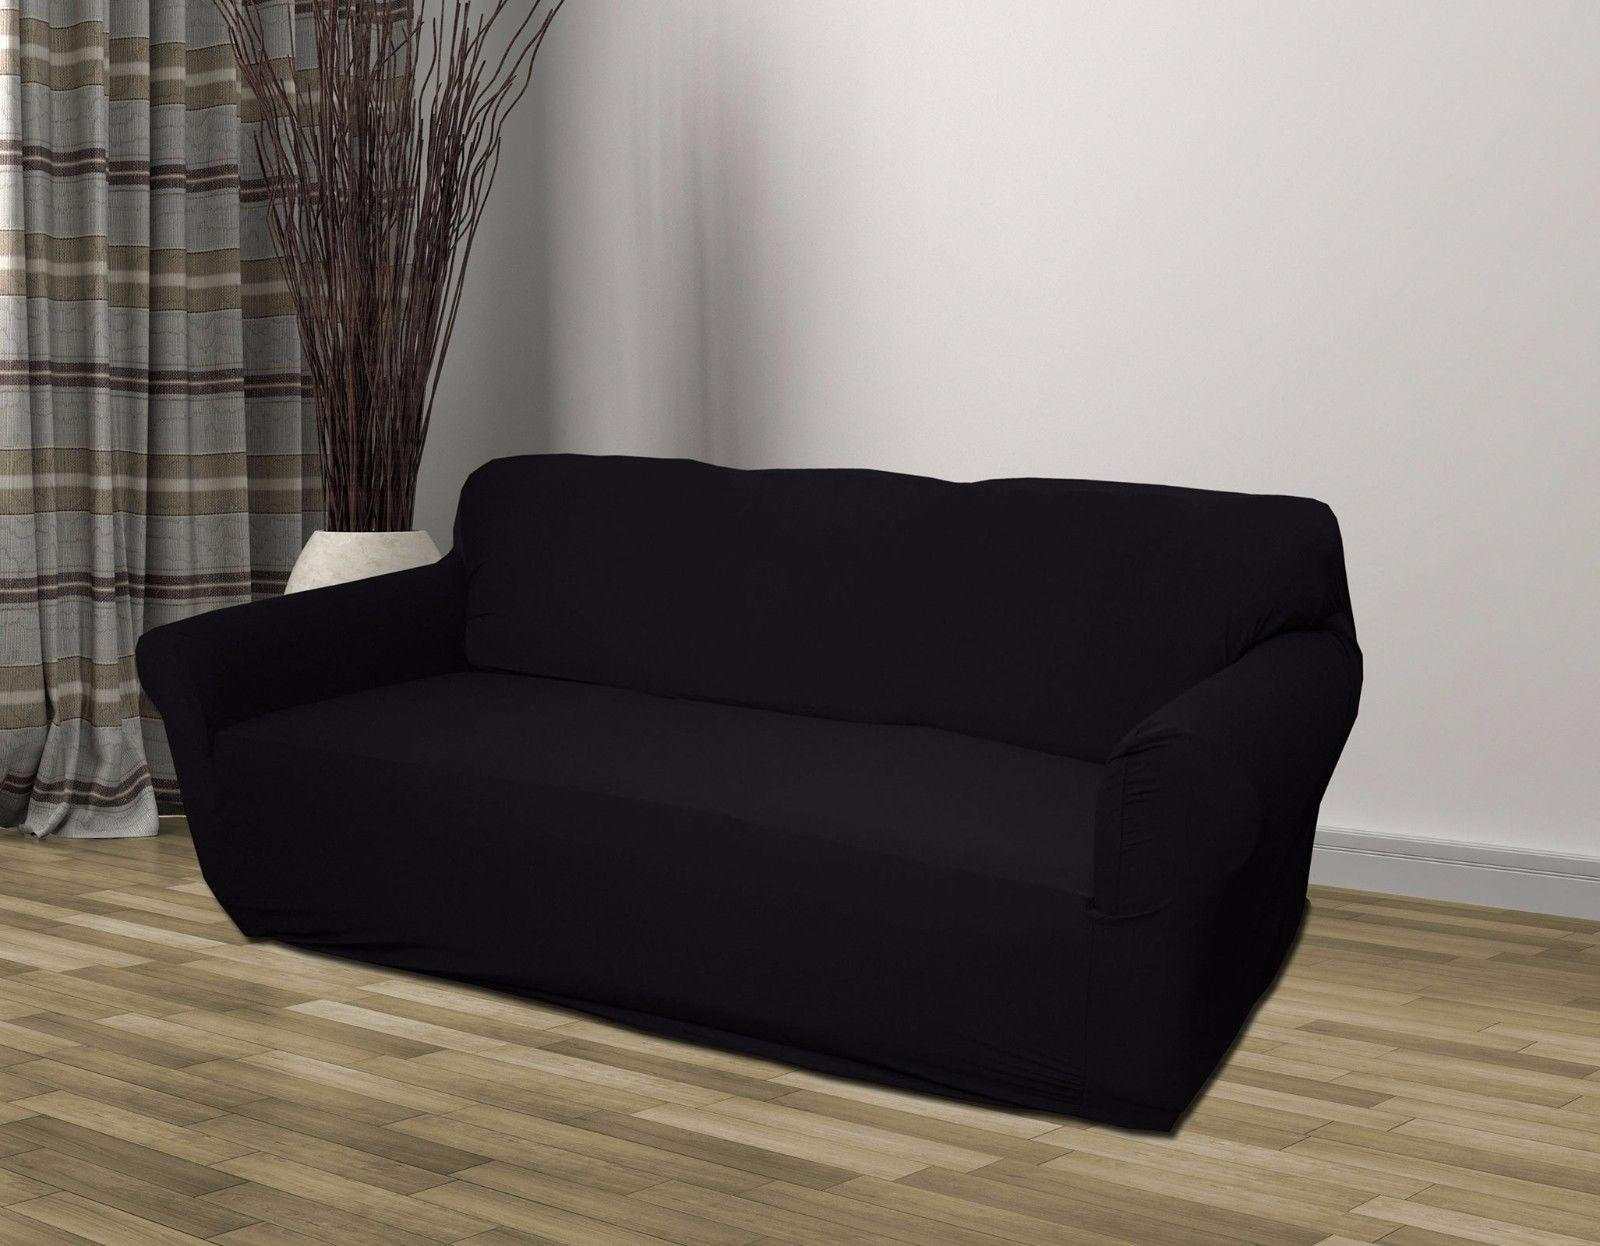 Black Jersey Sofa Stretch Slipcover, Couch Cover, Chair Loveseat With Regard To Black Sofa Slipcovers (Image 2 of 20)